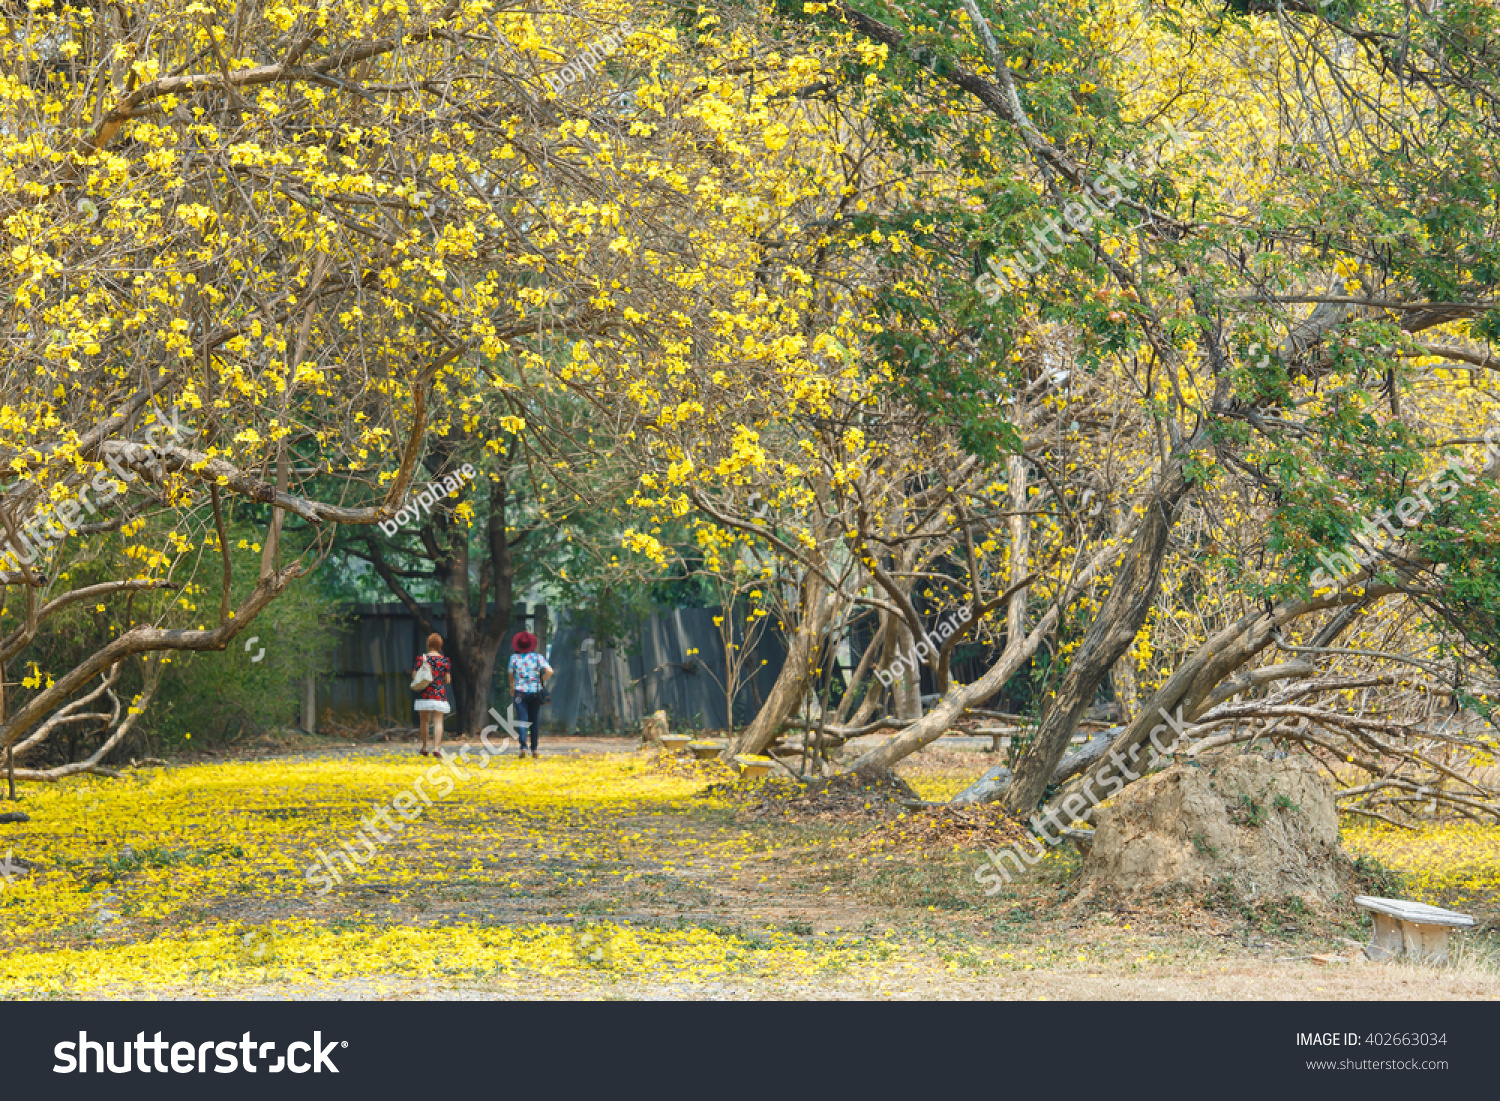 Flowers Yellow Flowers Golden Tree Yellow Pui Stock Photo Royalty